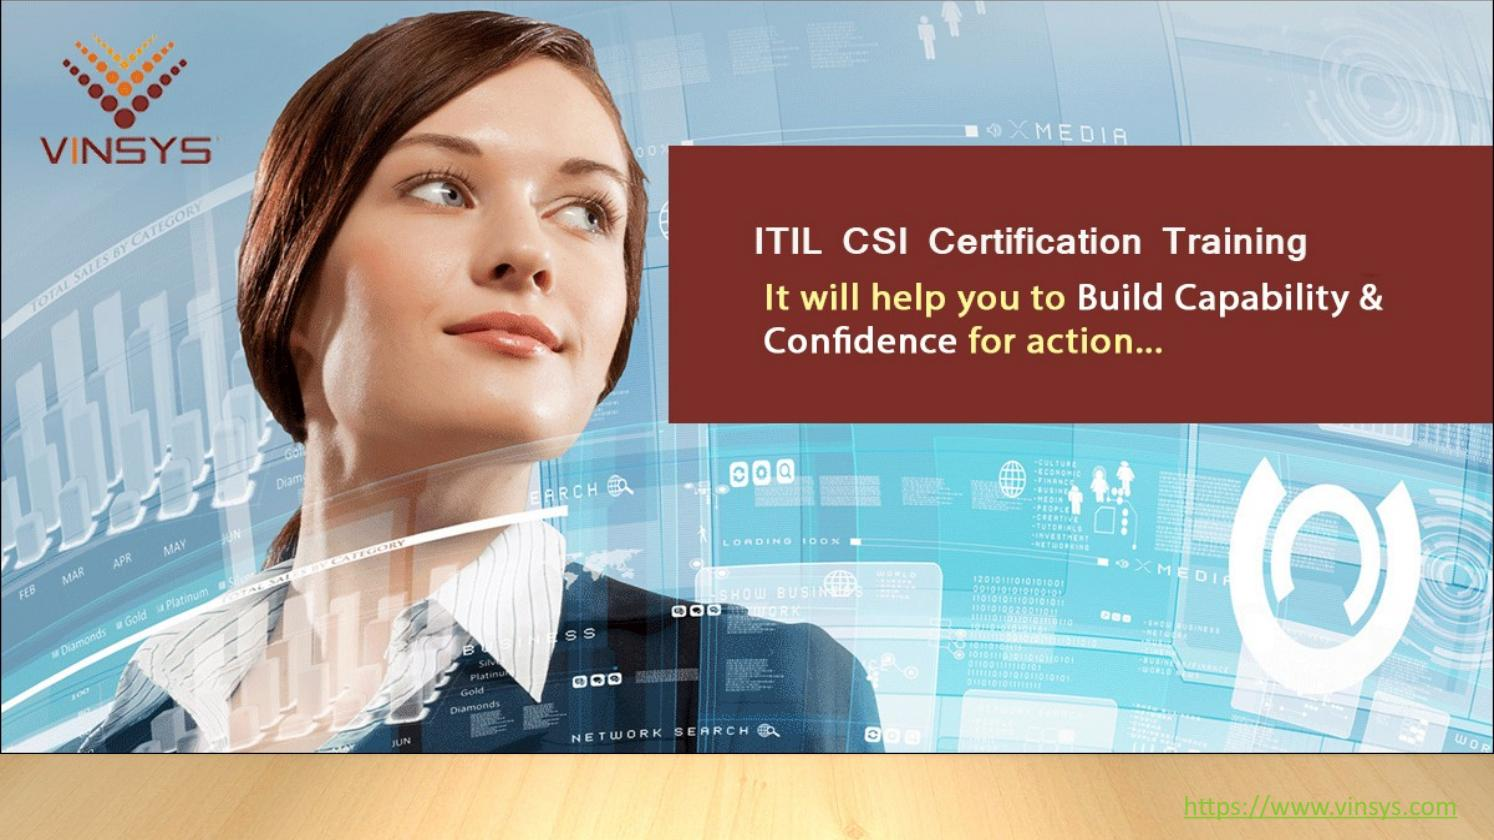 Itil Csi Certification Training In Bangalore By Sujata Satpute Issuu